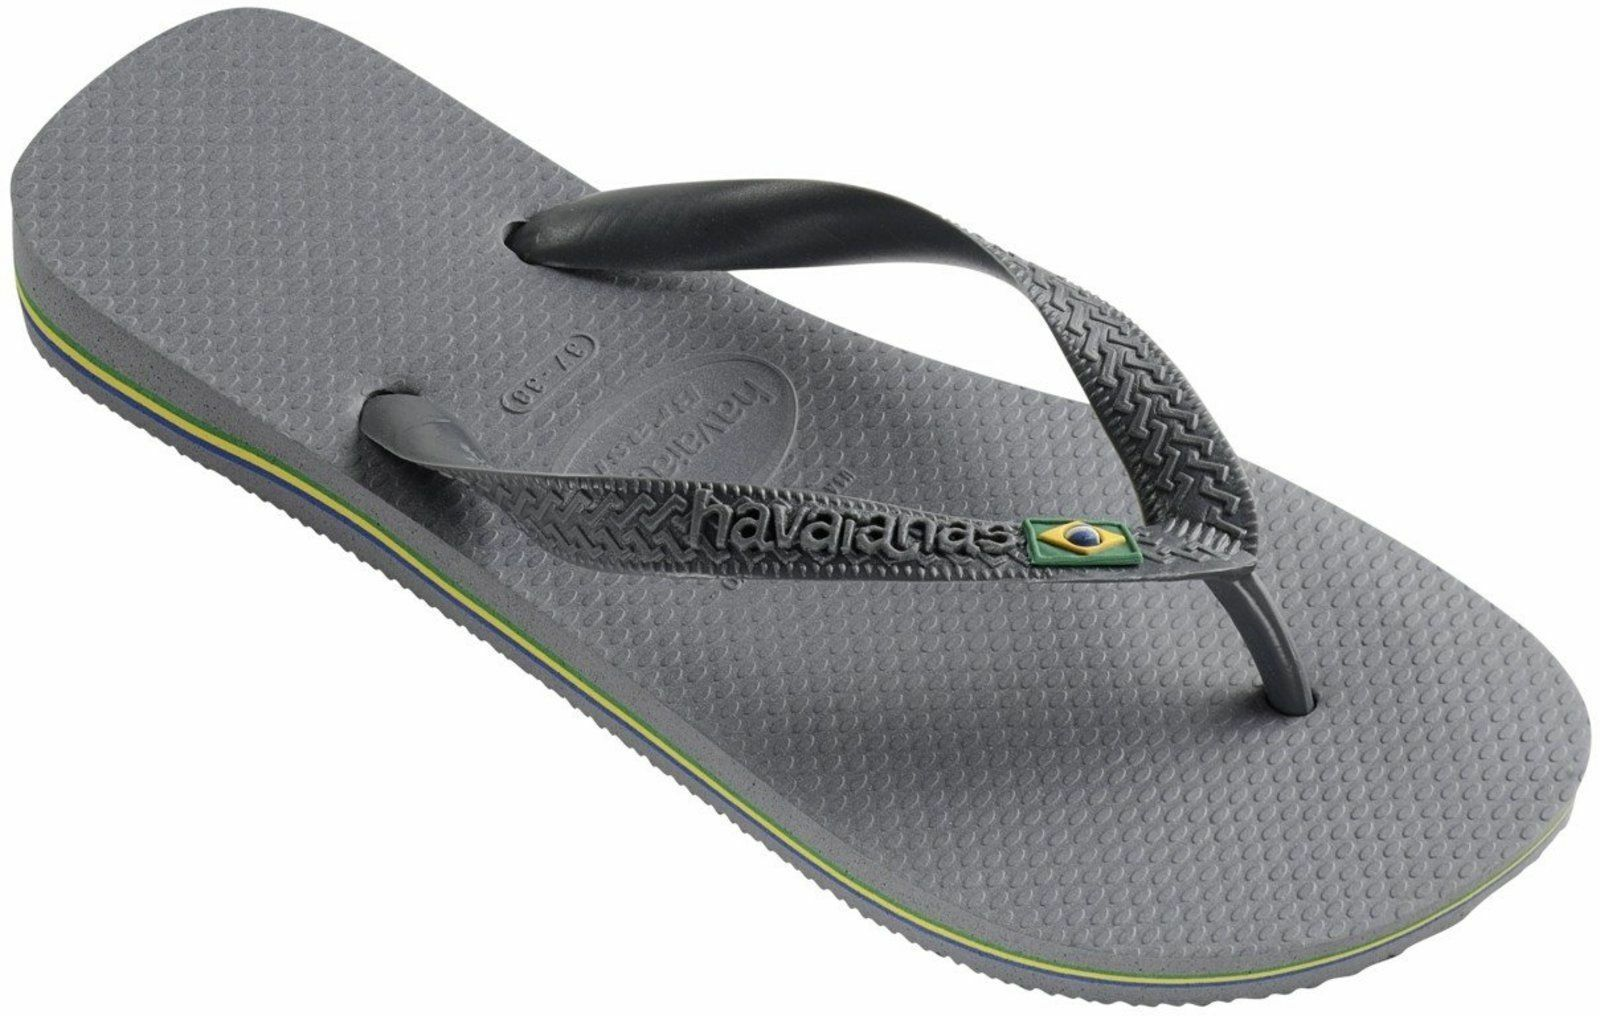 1c1dc6b5f7671e Havaianas Brazil Toe Post Flip Sandal Pool Shoes Slippers 4000032 ...